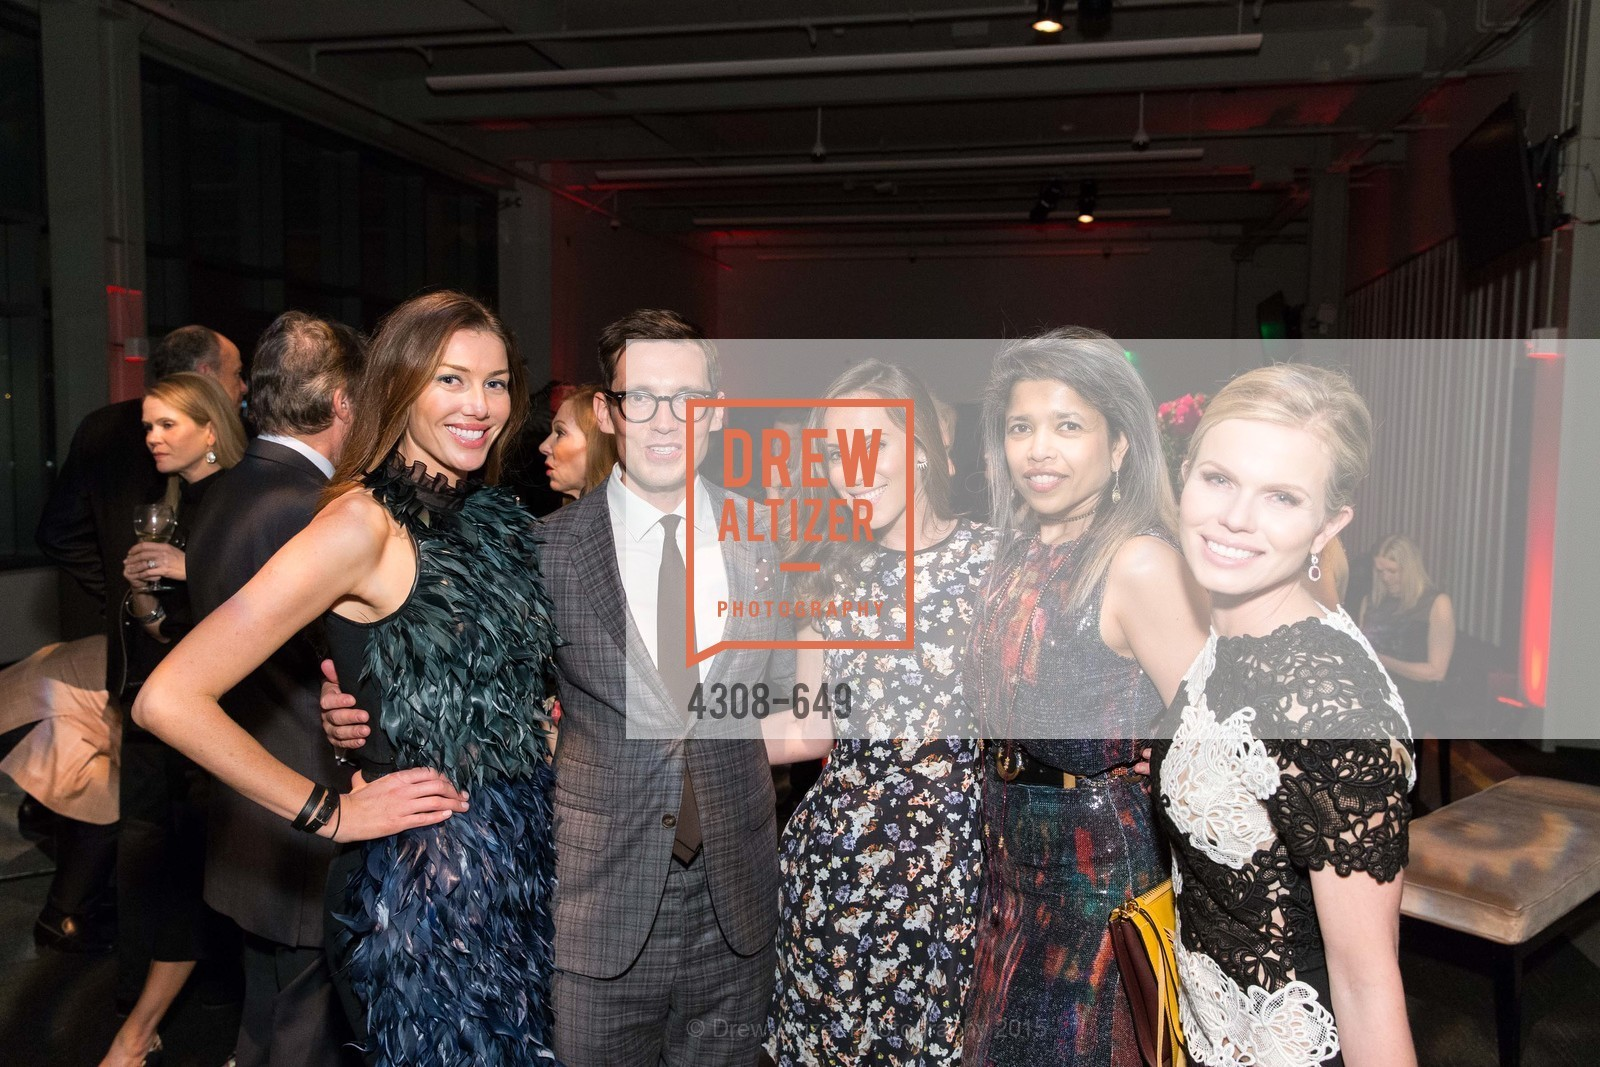 Sarah Somberg, Erdem Moralioglu, Cierra Sherwin, Deepa Pakianathan, Claire Fluhr, Fashion Forward: An Evening with Erdem presented by SF Opera Guild and Saks Fifth Avenue, Pier 27. Pier 27, The Embarcadero, March 25th, 2015,Drew Altizer, Drew Altizer Photography, full-service agency, private events, San Francisco photographer, photographer california